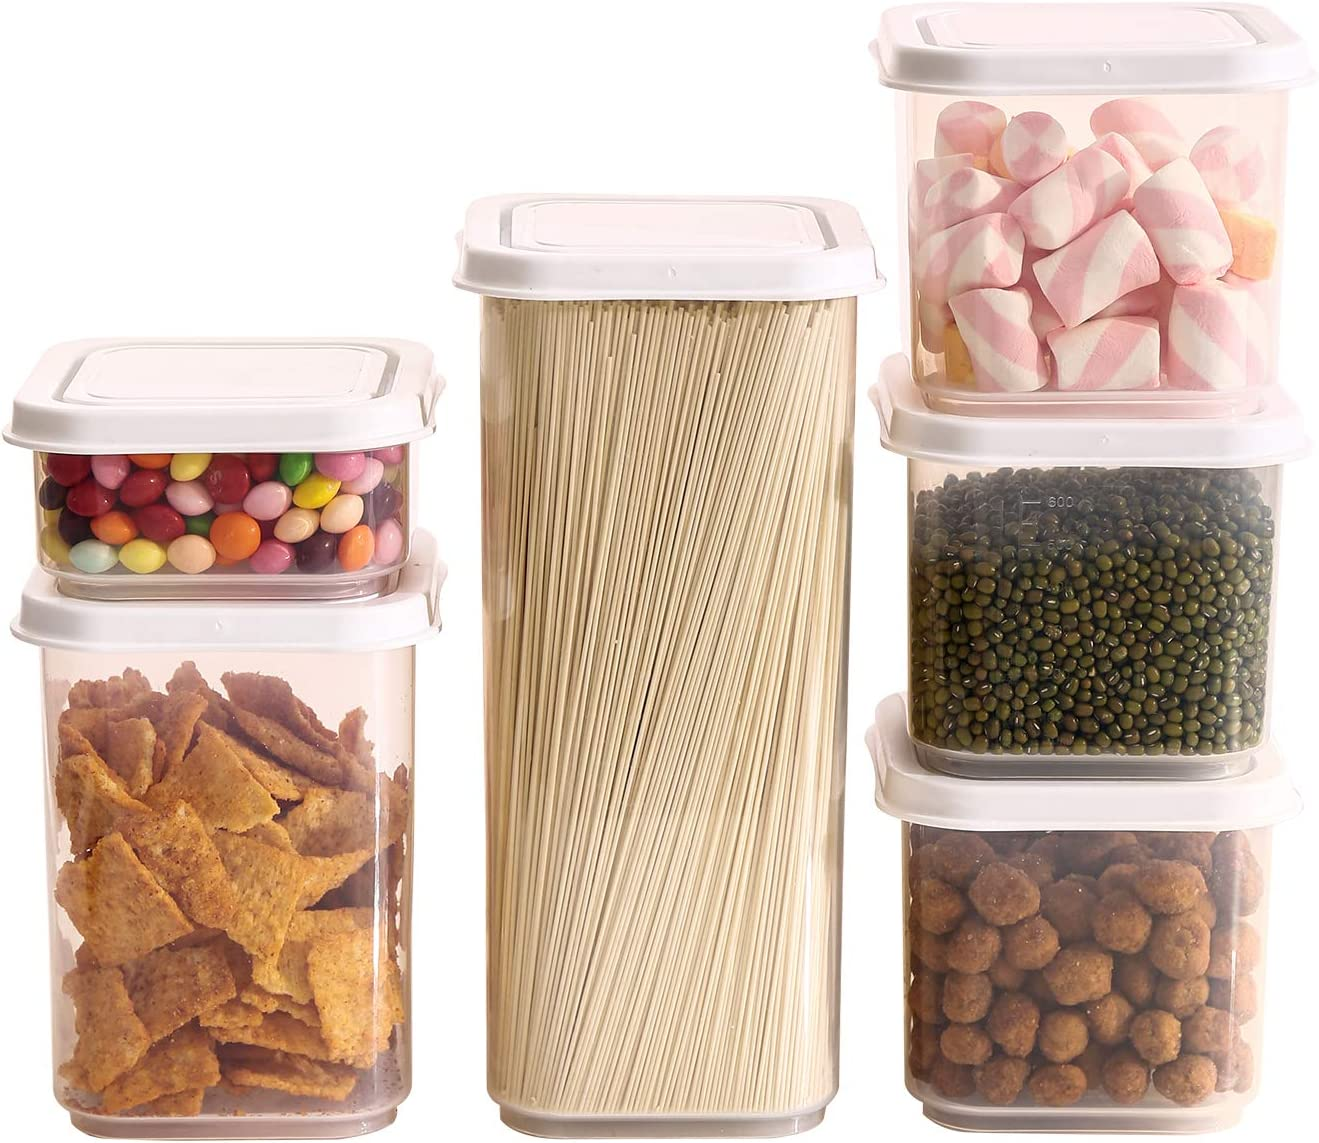 Sealed Food storage Container Set, 6 pieces plastic storage container set, (1.8L, 1L, 0.7L x 3, 0.3L) kitchen and pantry organization, sugar, noodles, snacks, baking, leak proof…(Pure white)